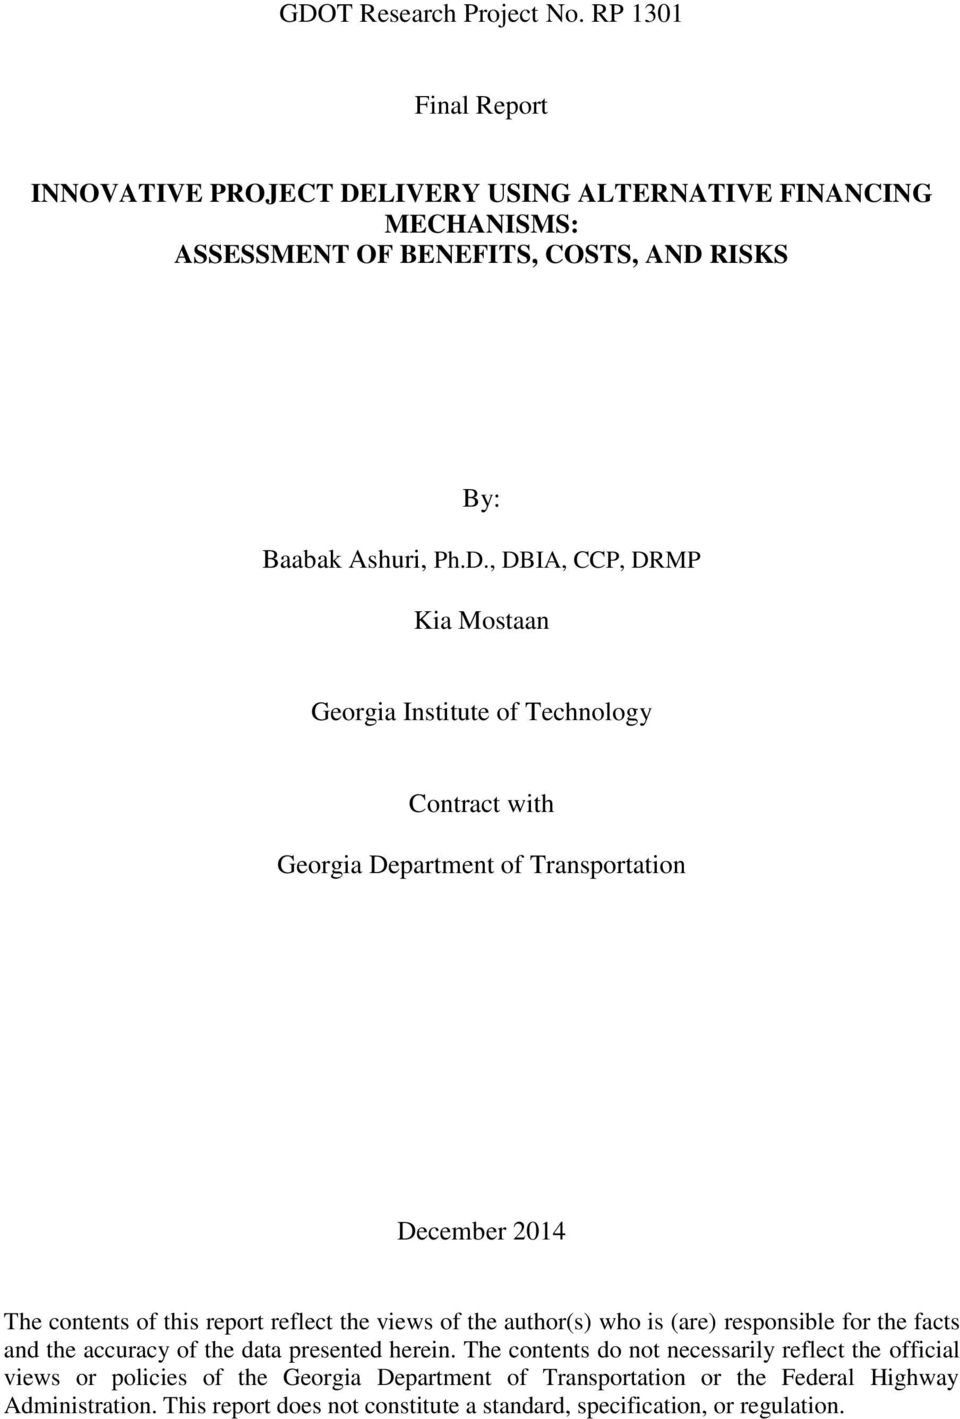 LIVERY USING ALTERNATIVE FINANCING MECHANISMS: ASSESSMENT OF BENEFITS, COSTS, AND